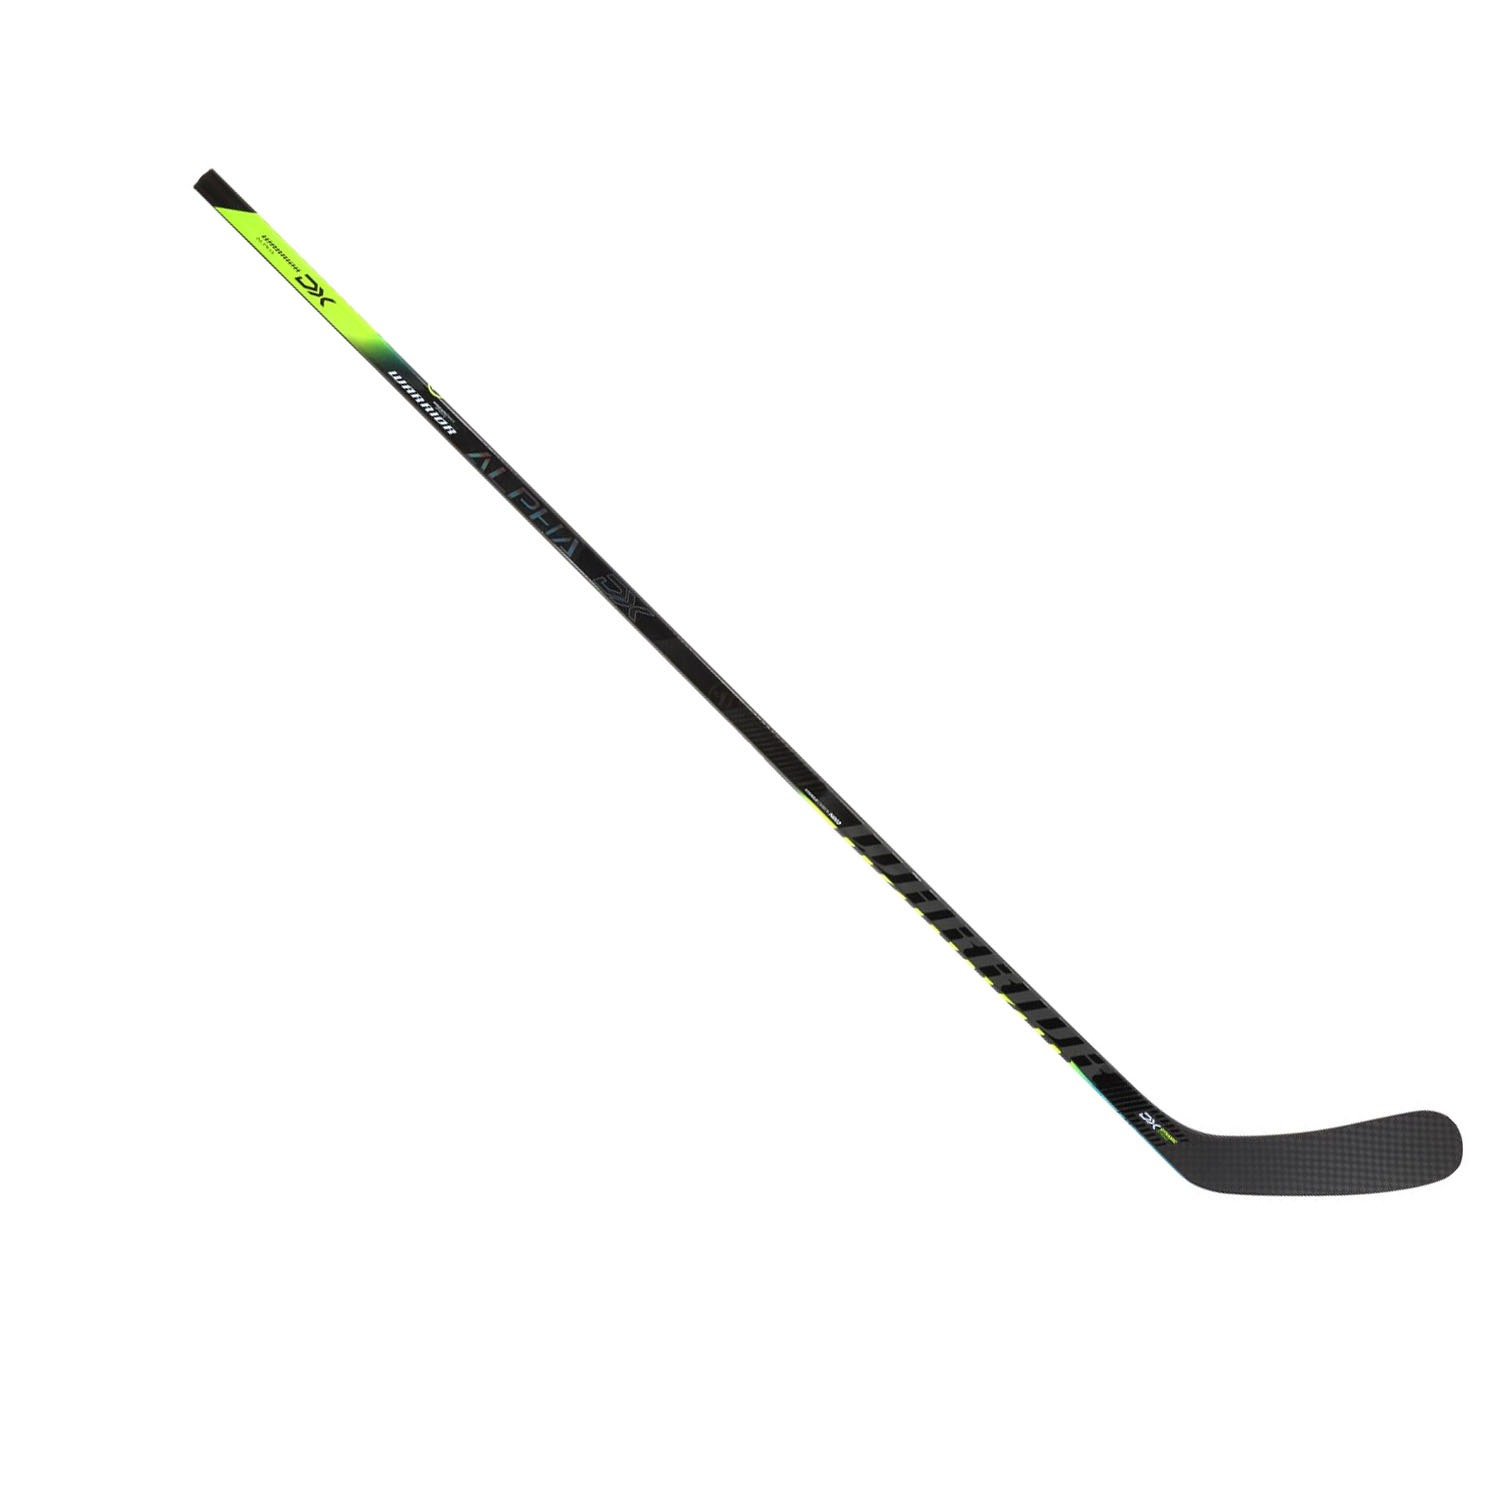 Warrior Alpha DX Grip Kinder Composite Eishockeyschläger online kaufen im Eishockeyschläger Onlineshop von Planethockey.de